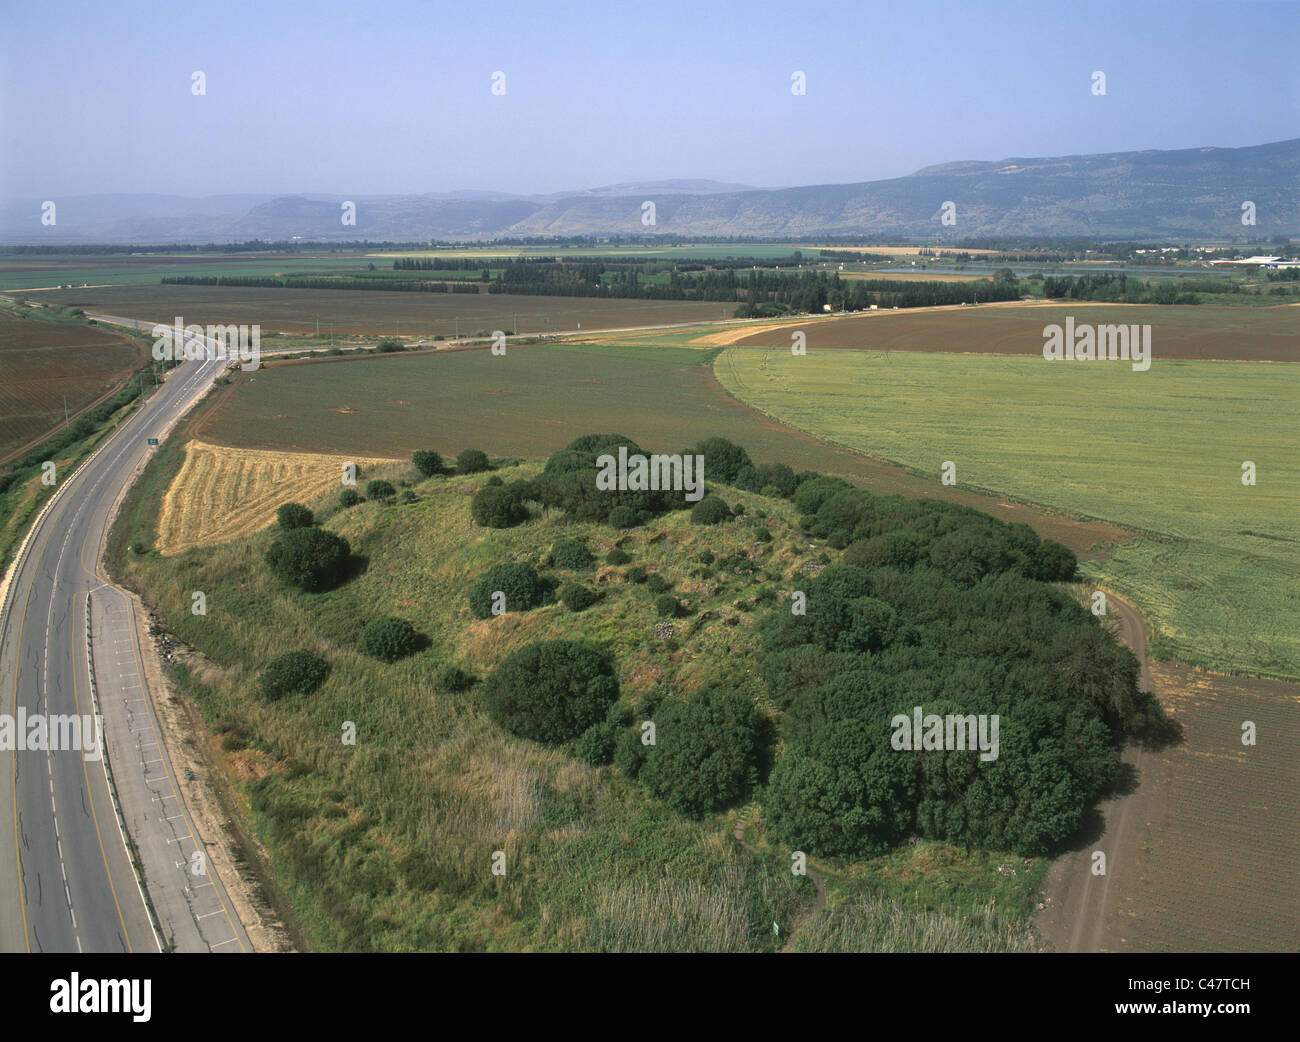 Aerial view of the Hellenistic site of Anafa in the Upper Galilee - Stock Image